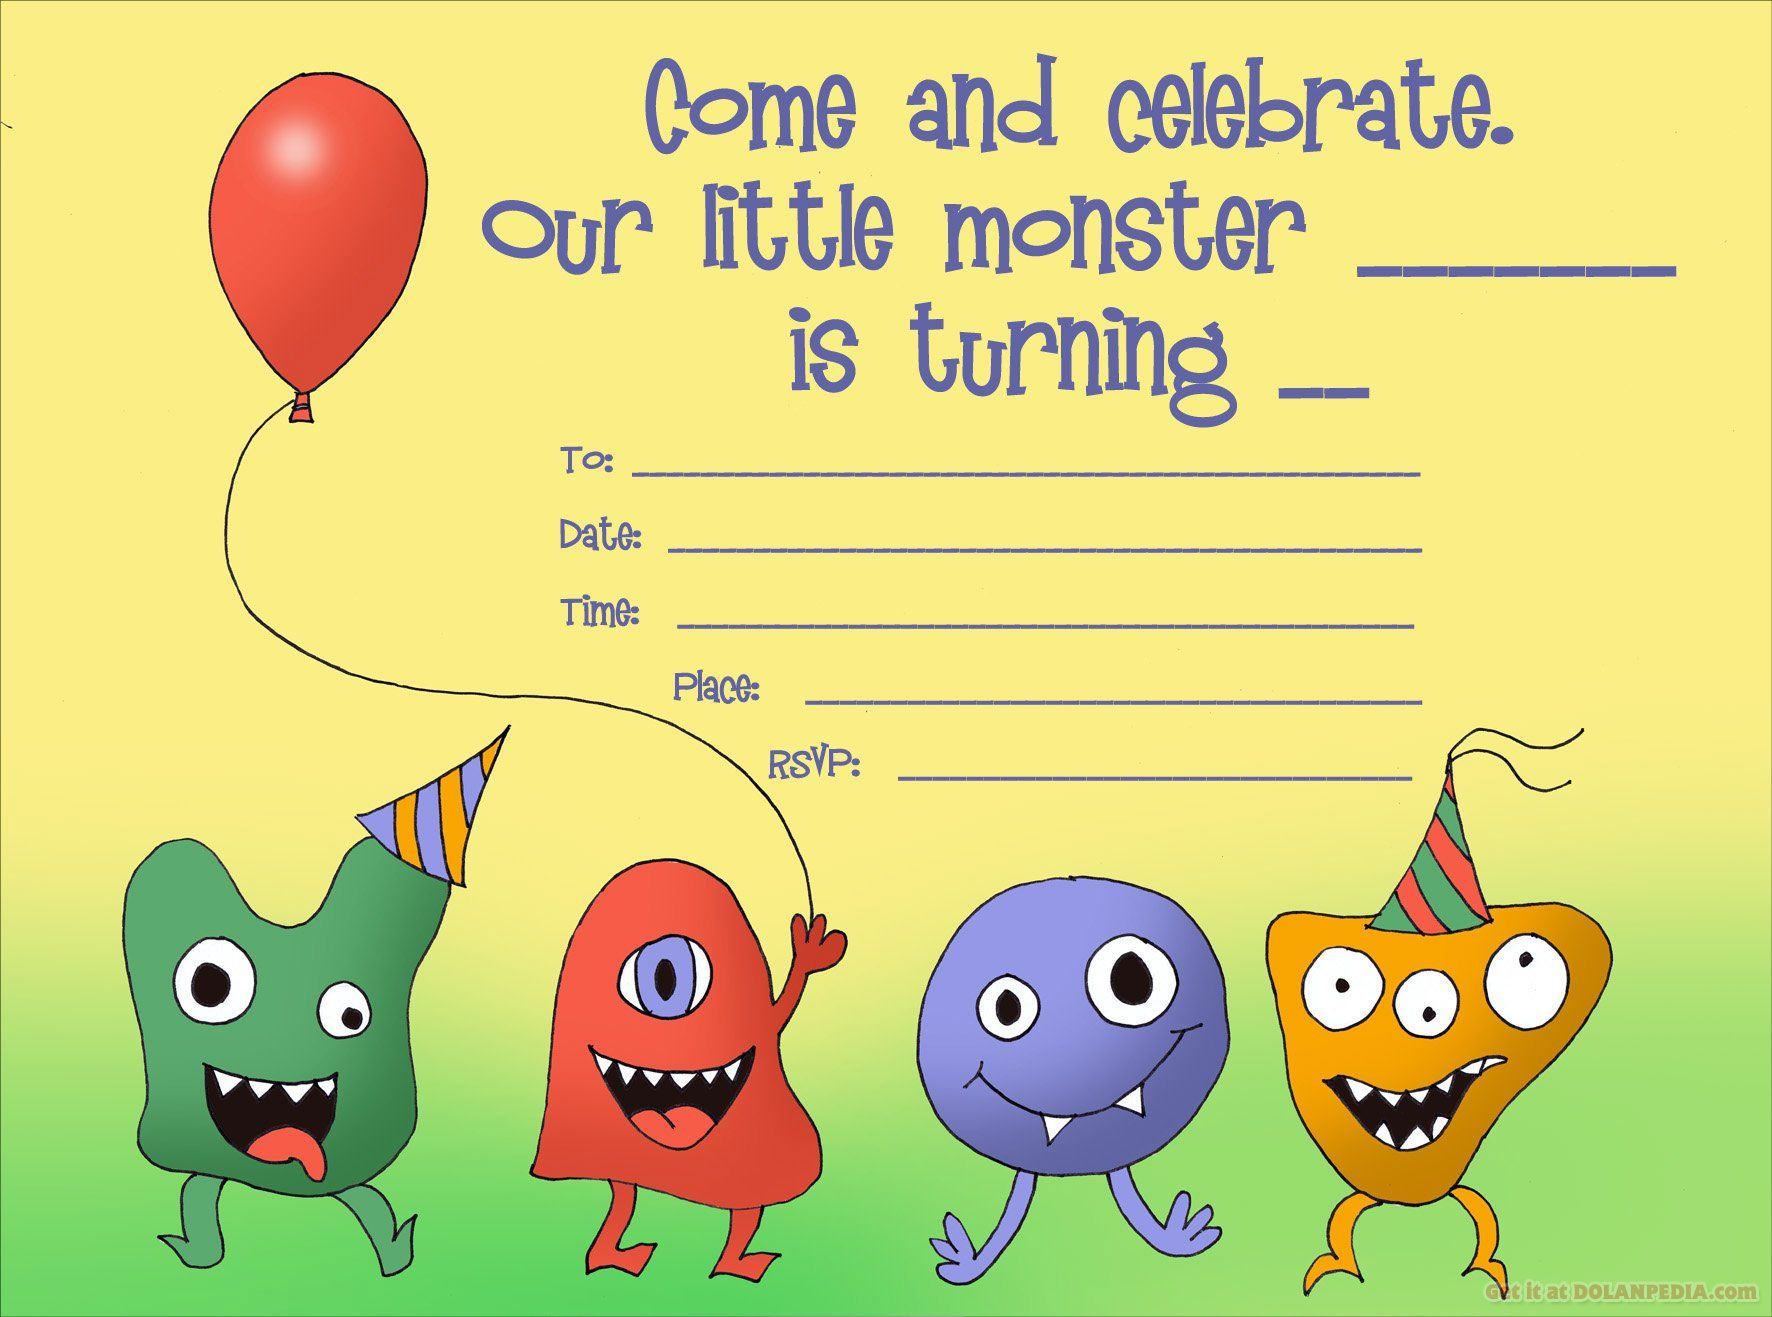 Cool Little Monsters Birthday Invitation Template Invitation Card Birthday Monster Birthday Invitations Happy Birthday Invitation Card